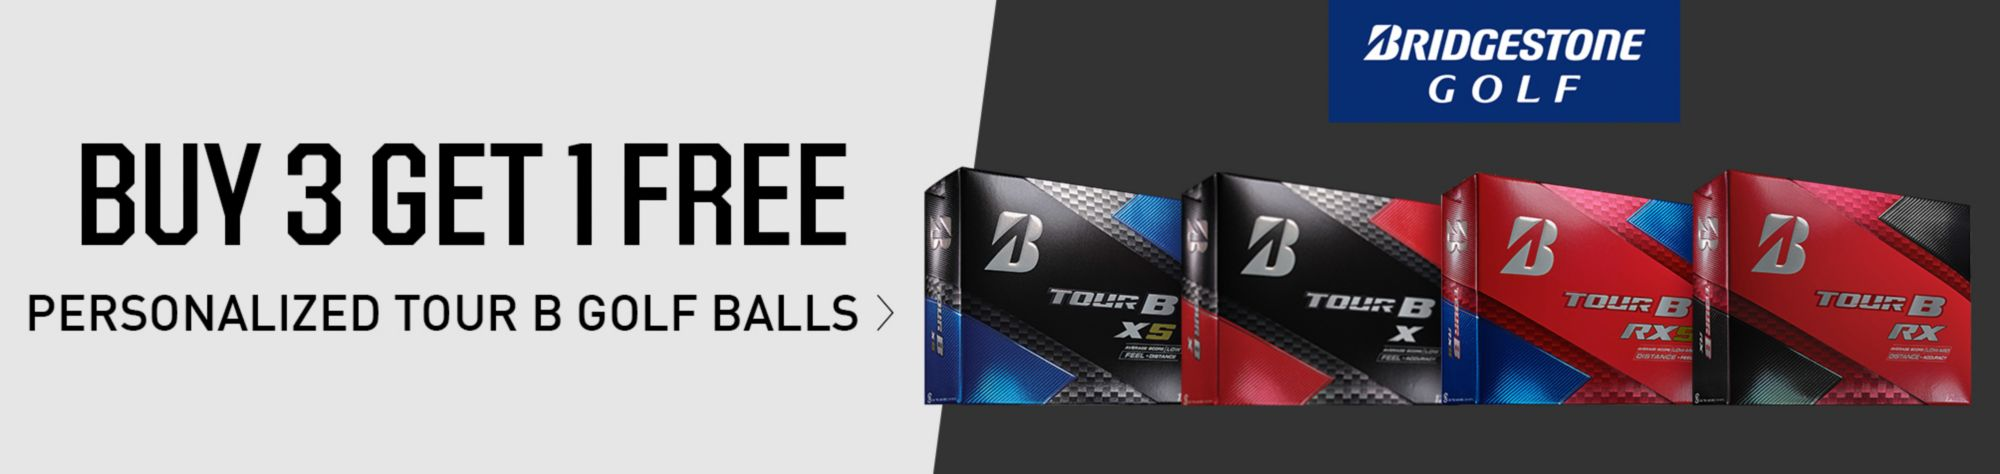 Buy 3 Get 1 Free Personalized Tour Golf Balls